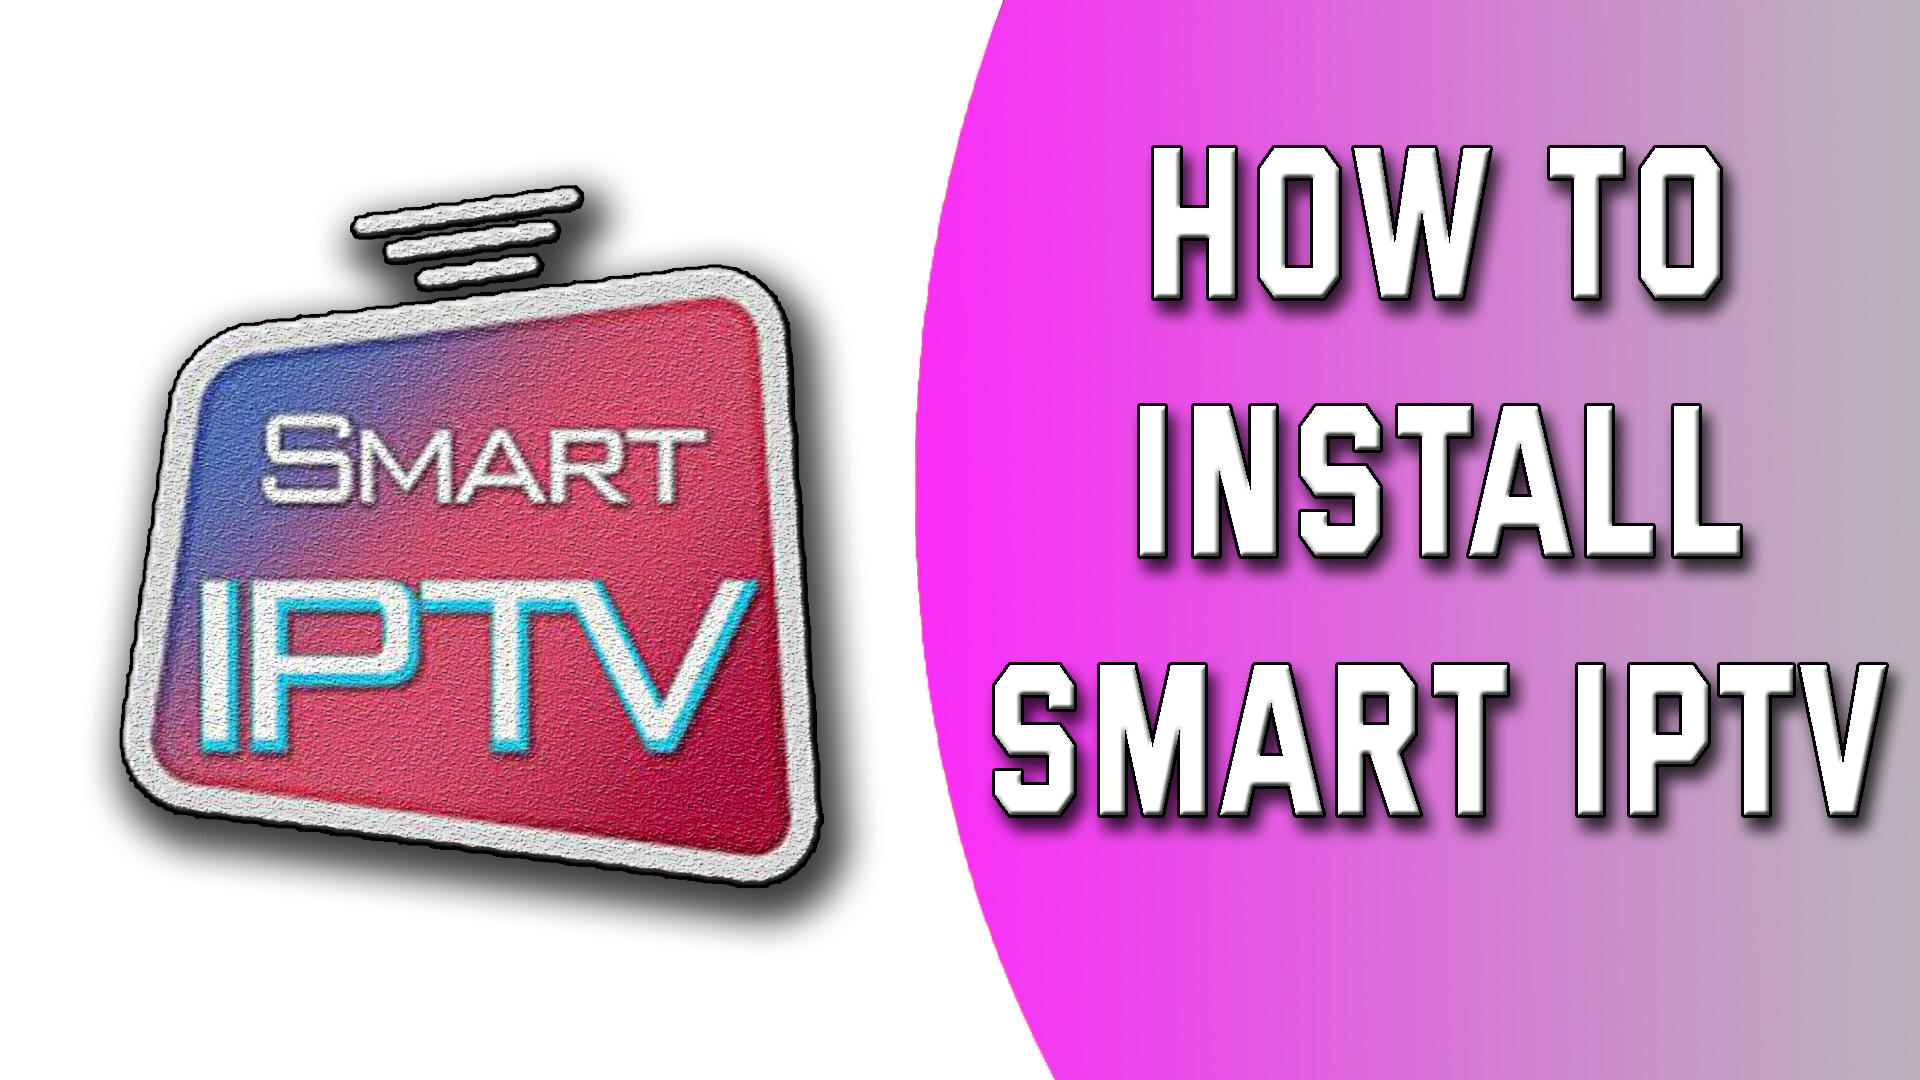 How to install smart IPTV